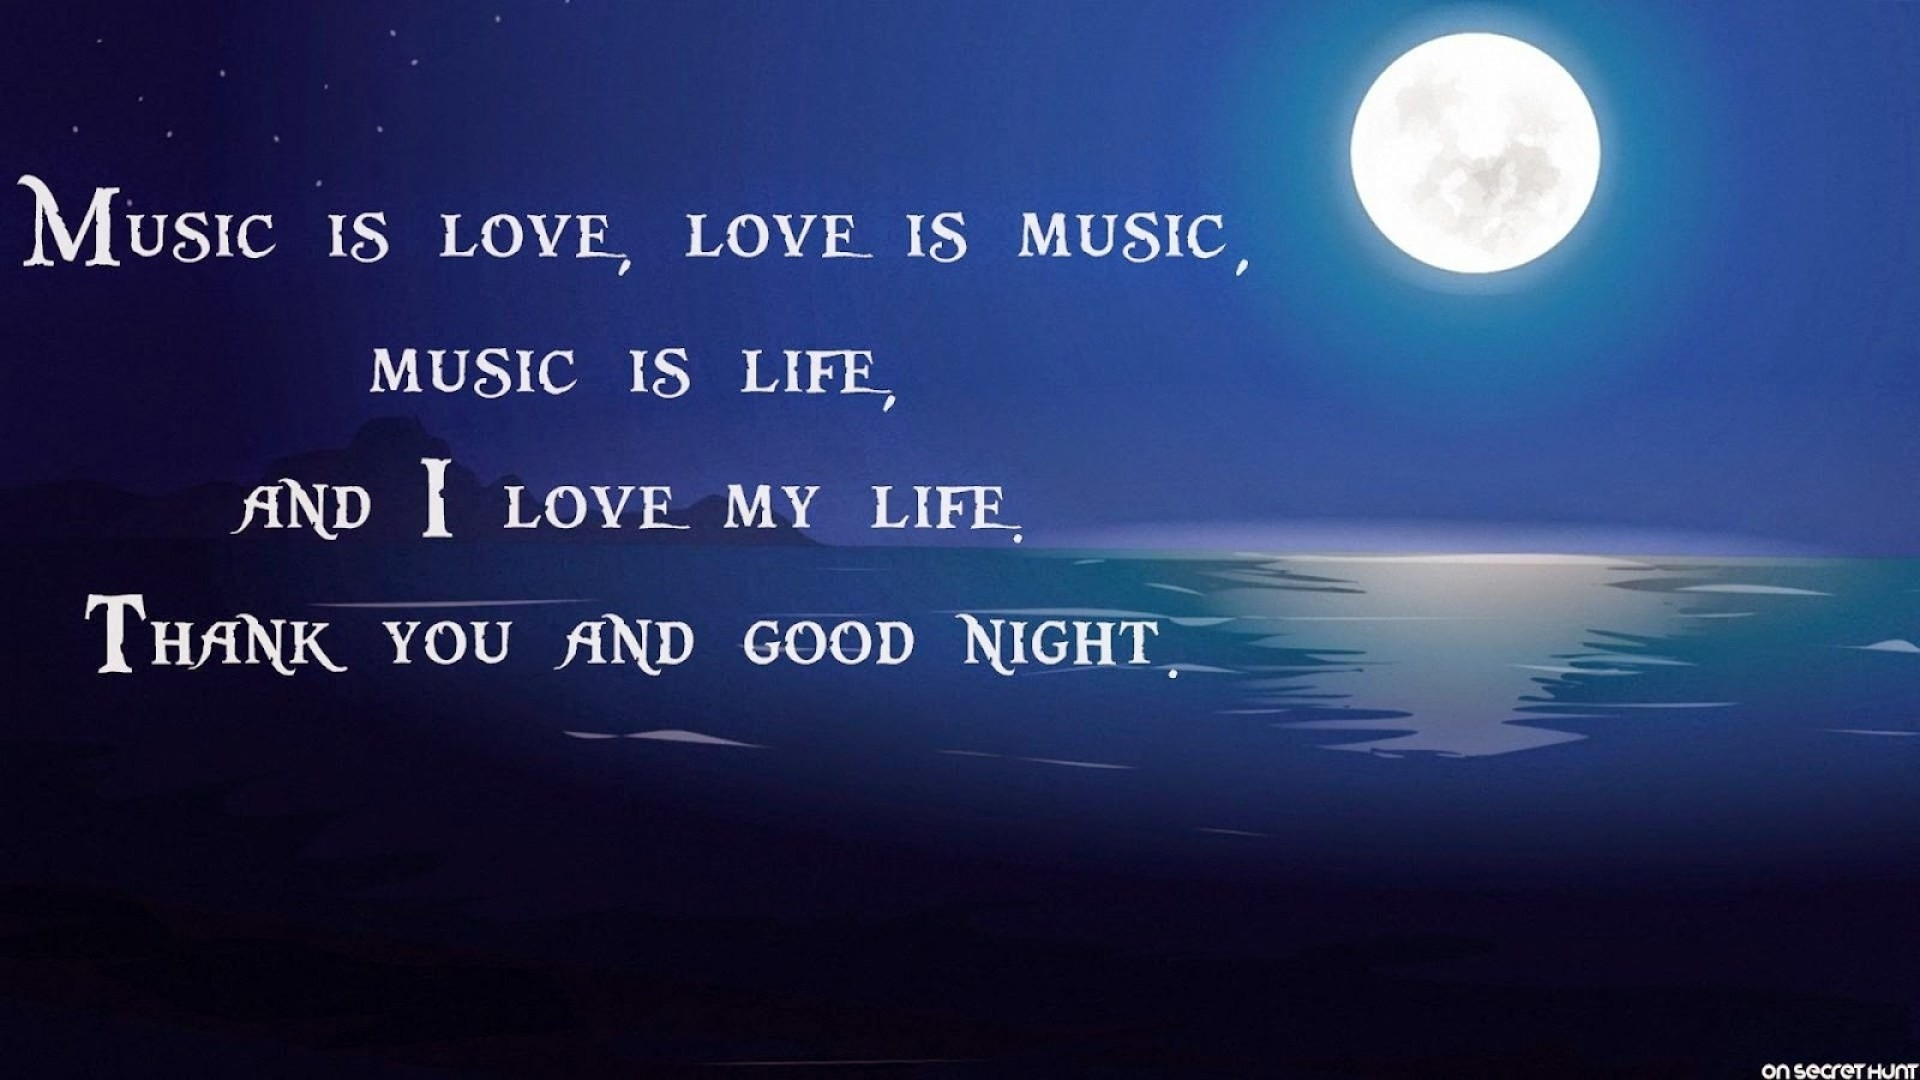 … Pictures Of Good Night Love Quotes Images Hd Free Download 1366×768 IPhone  Wallpapers HD …